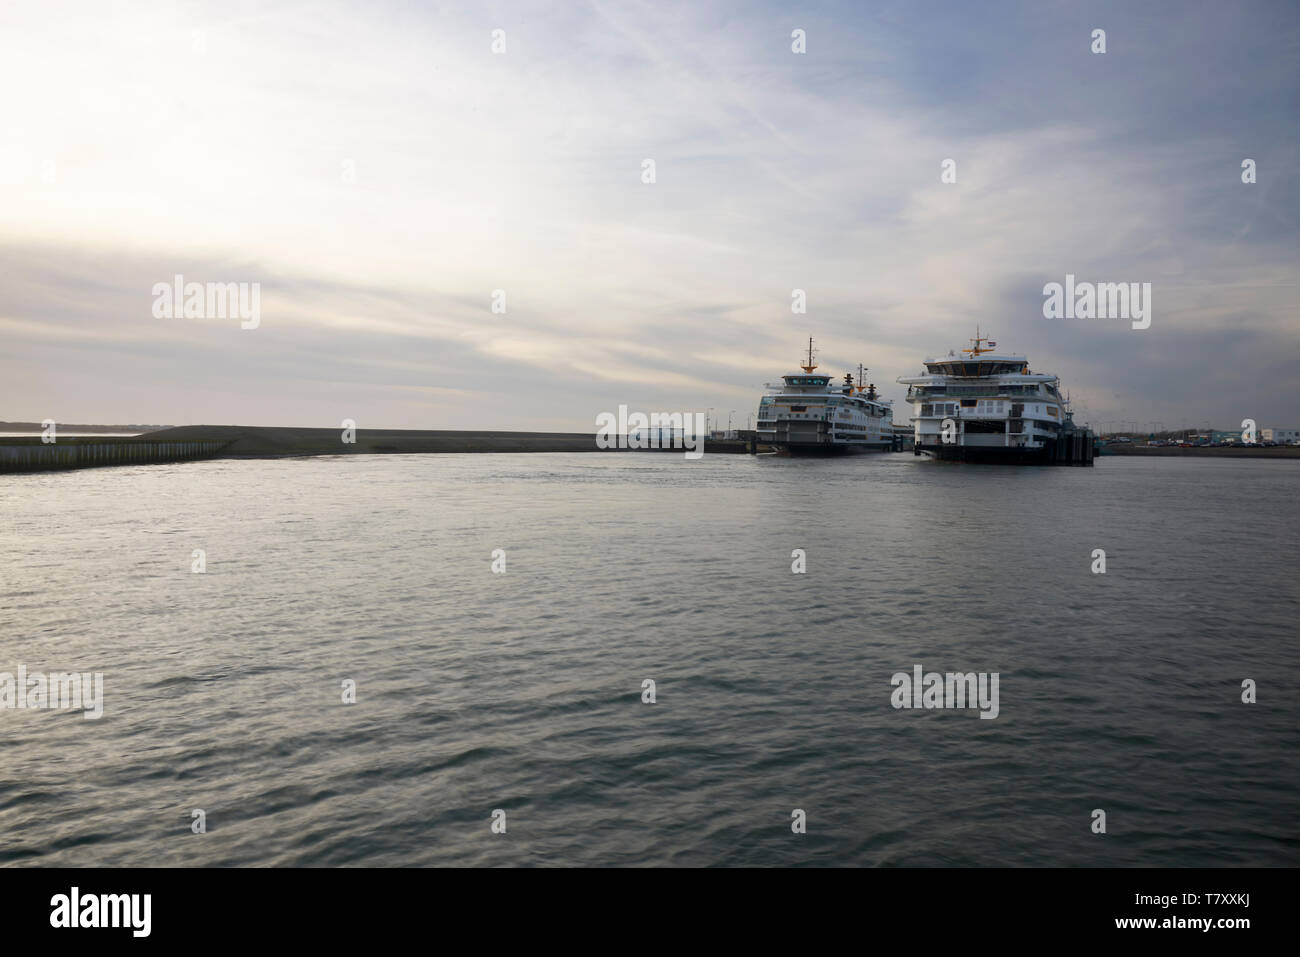 Beautiful wide shot of two ferry ships crossing the water - Stock Image